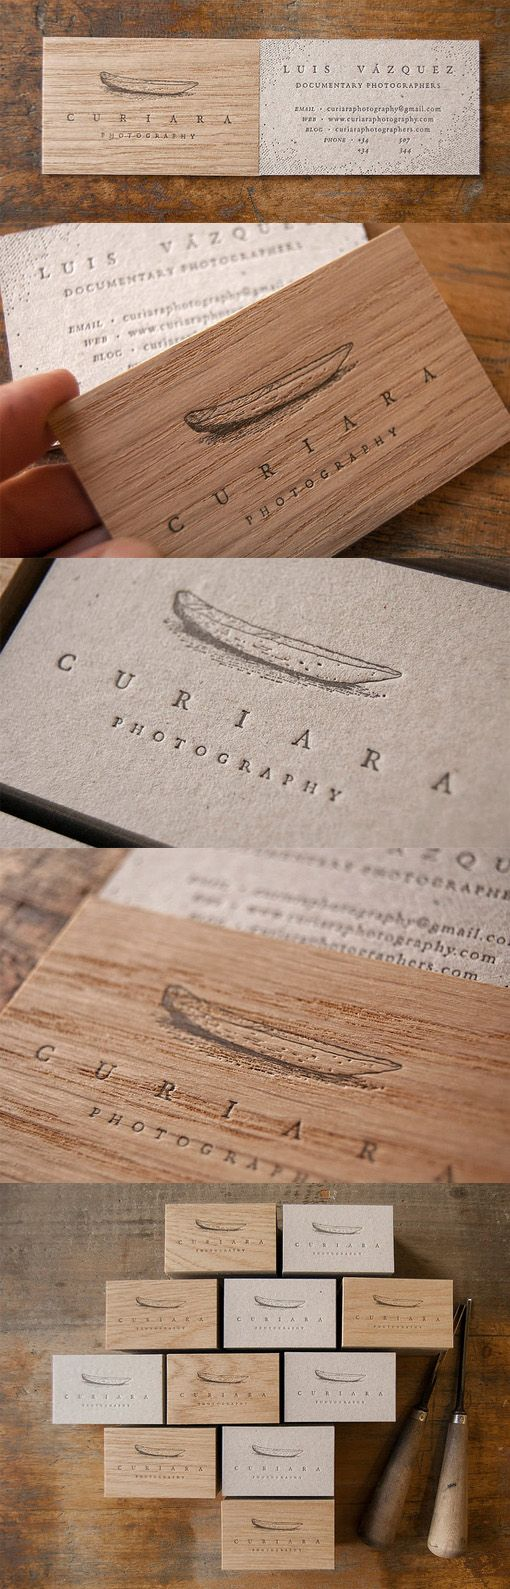 Clever Layered Letterpress Wooden Business Card Design For A Photographer